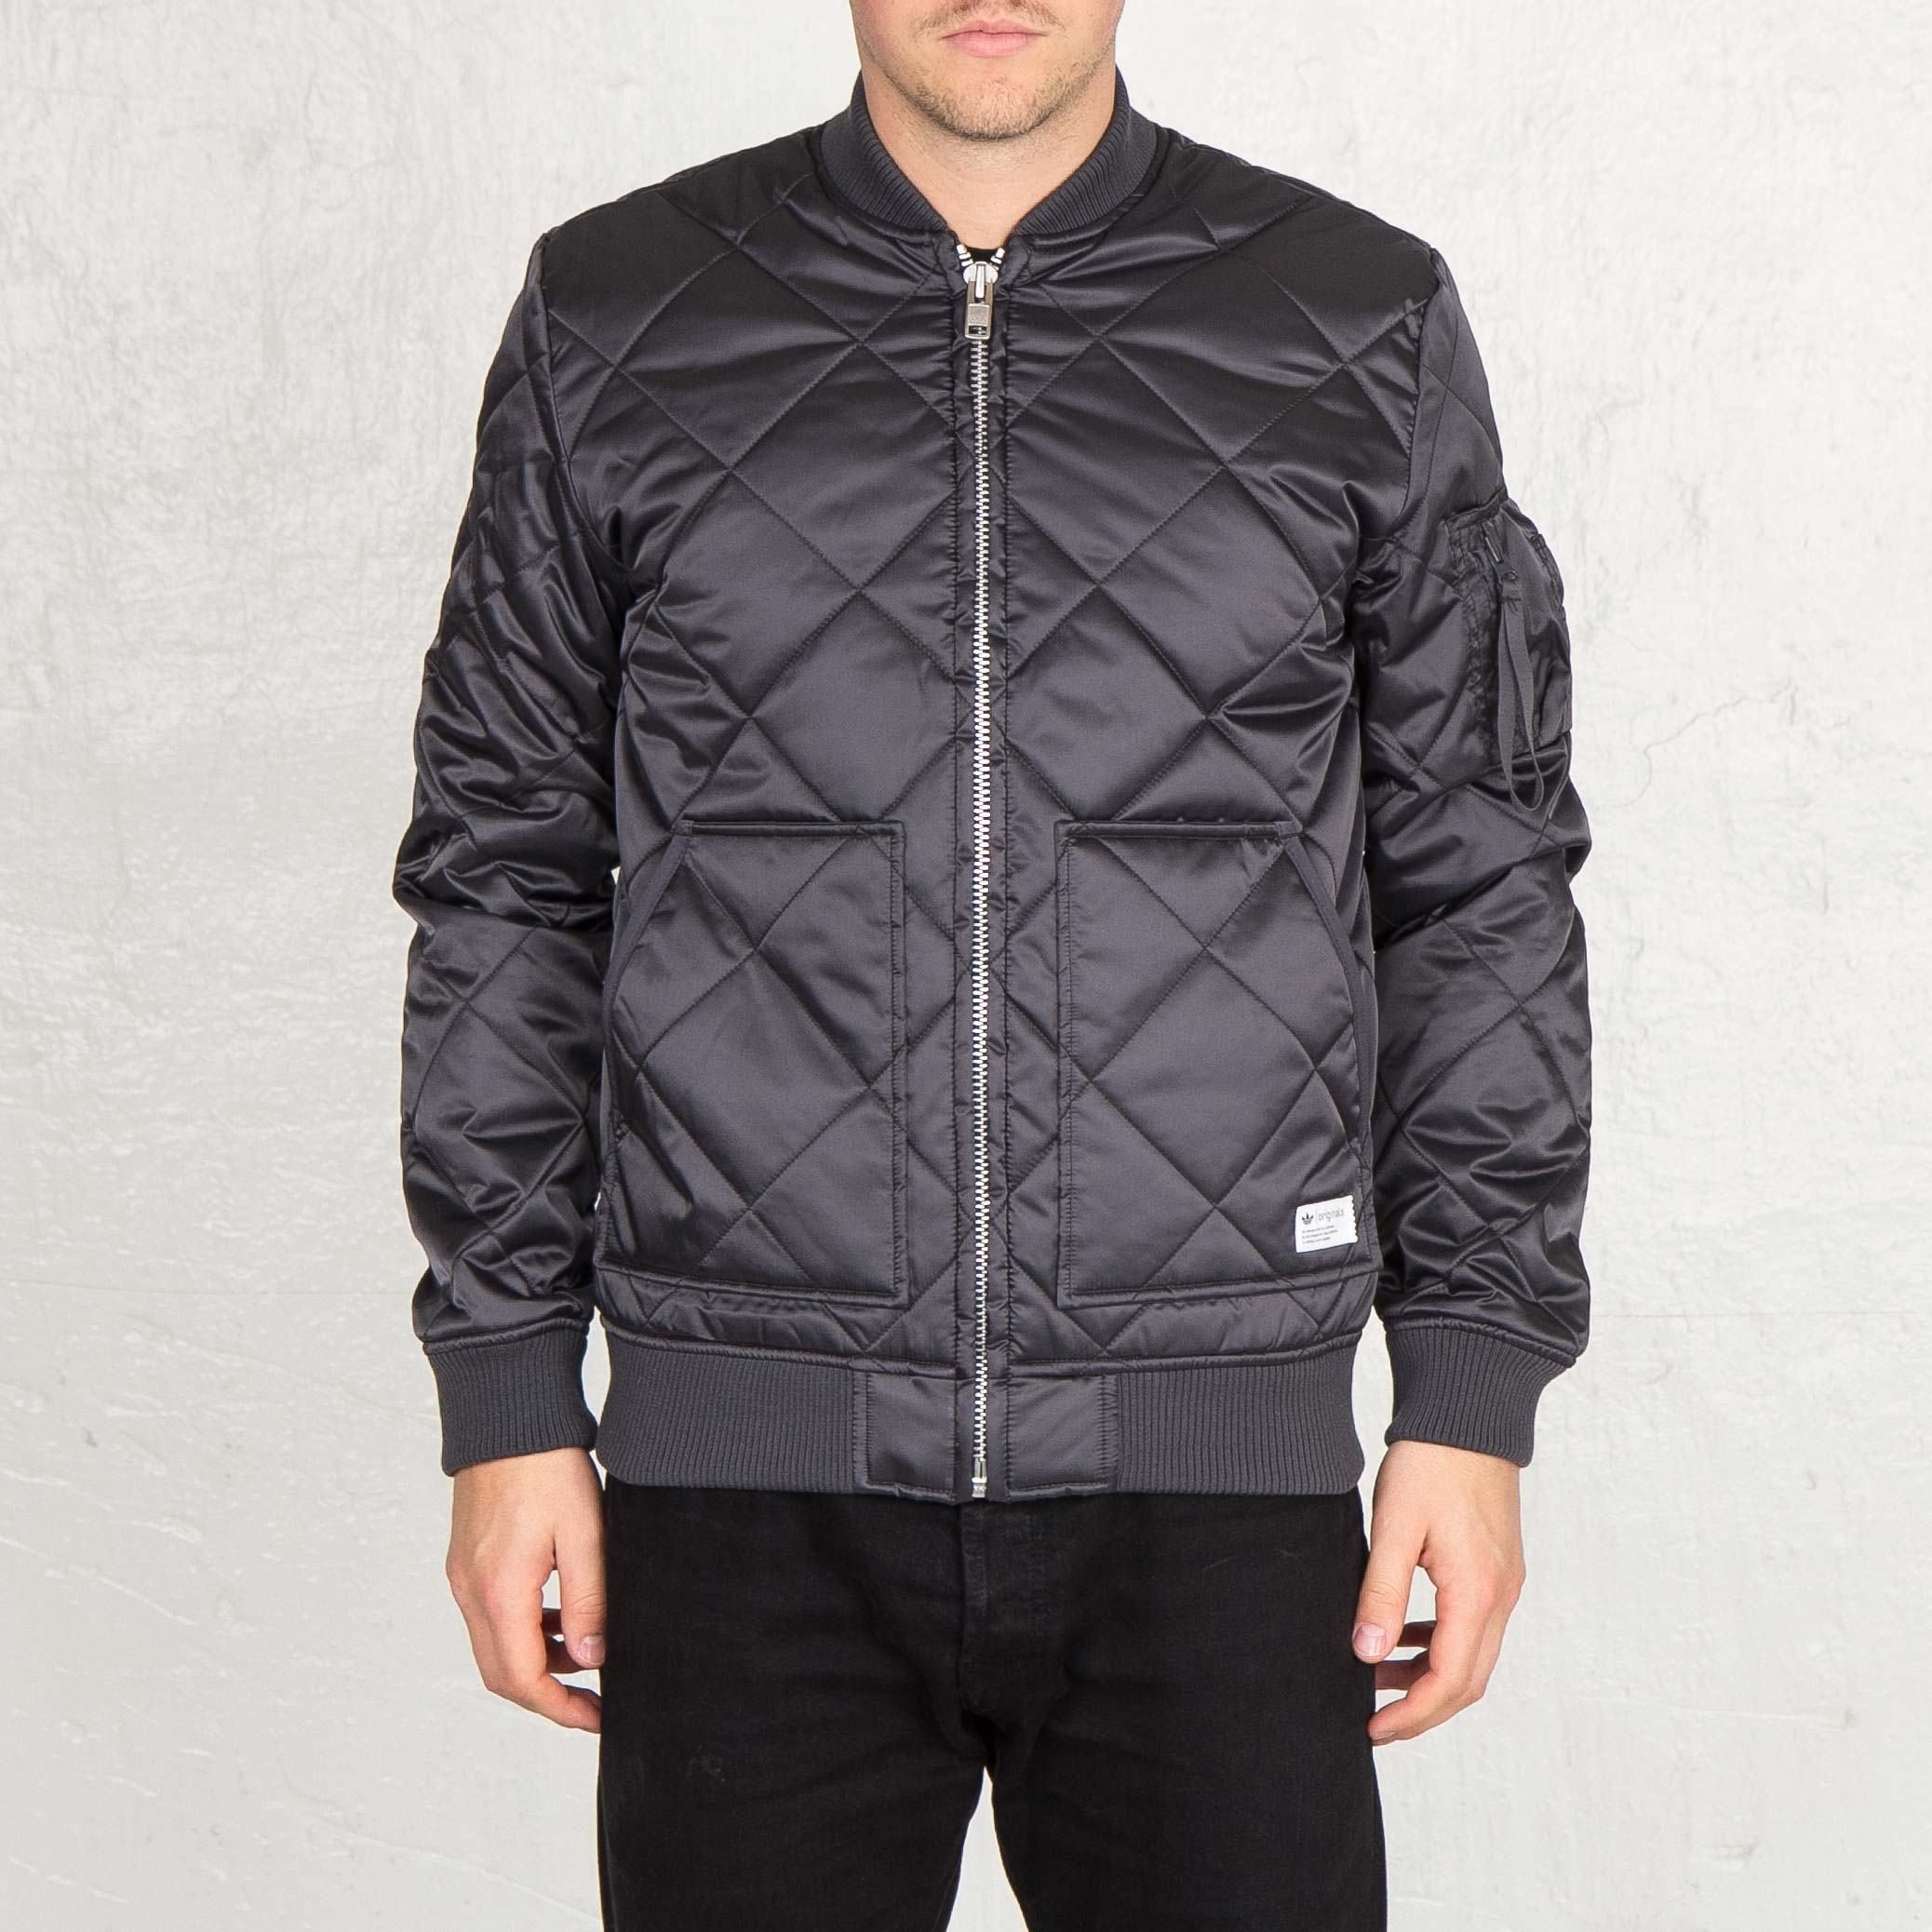 c7627ff61b49 adidas Quilted Bomber Jacket - Aa9025 - Sneakersnstuff